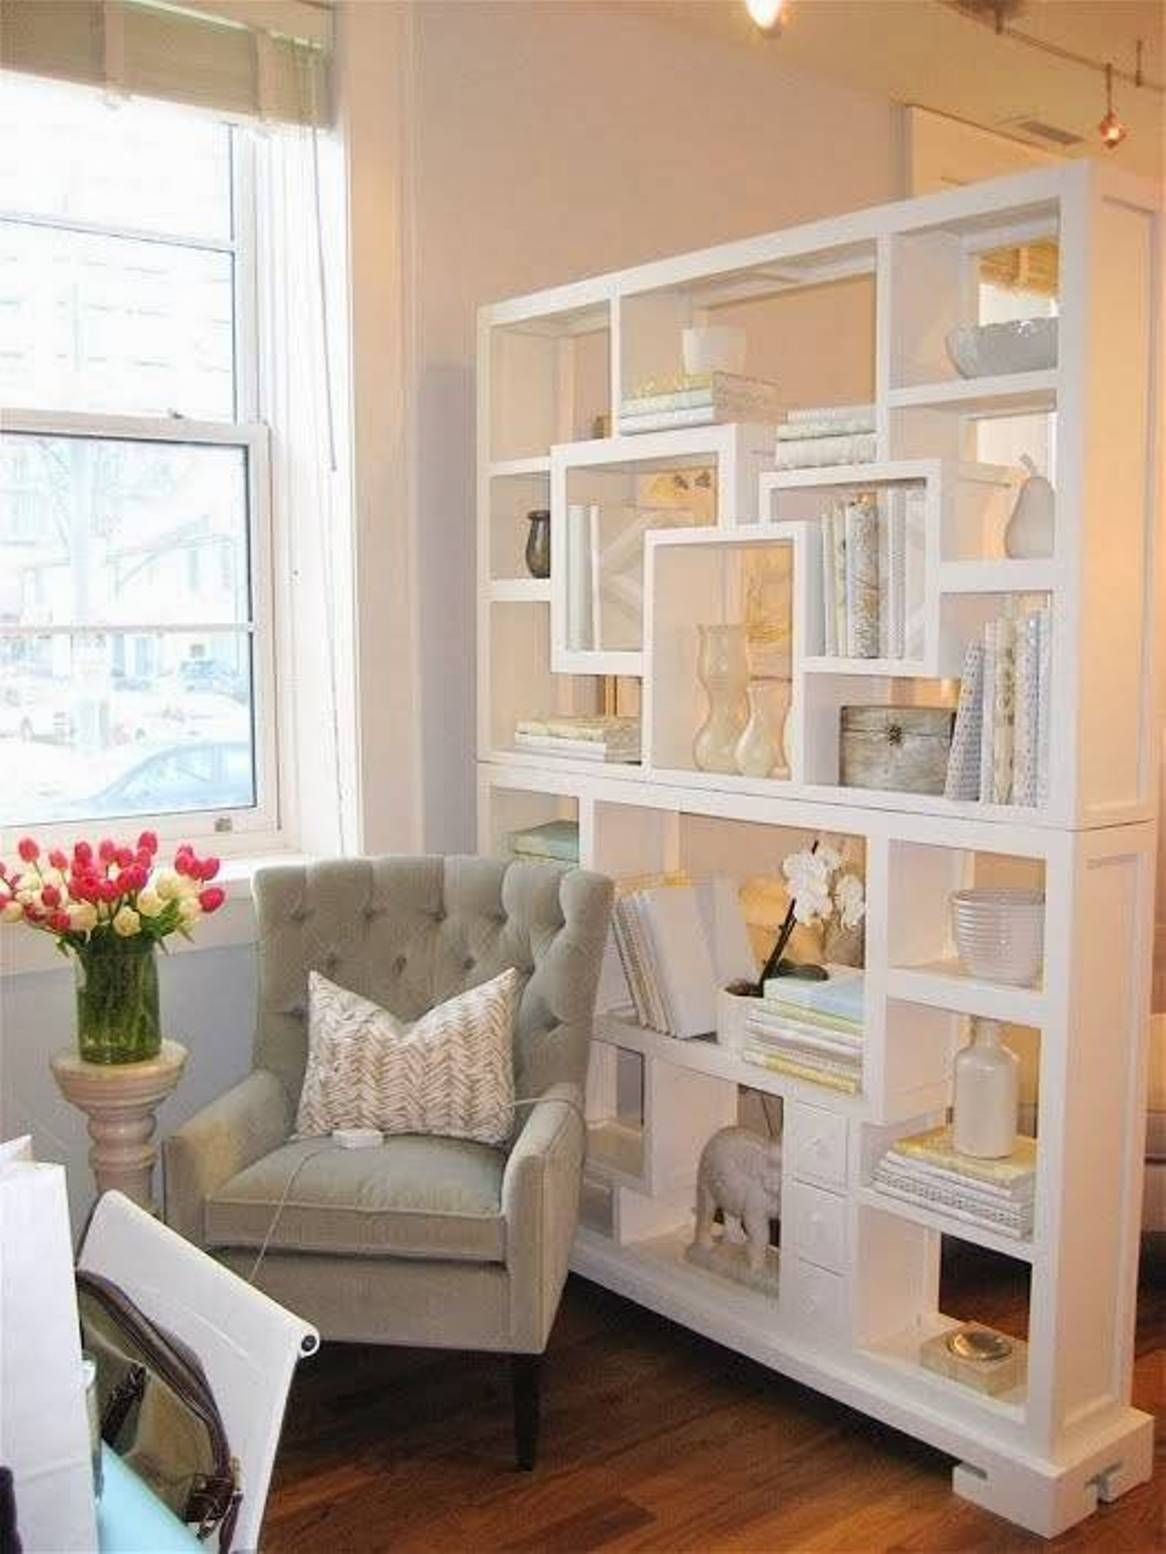 Freestanding Bookcase Living Room Divider : Living Room Divider Ideas Part 46